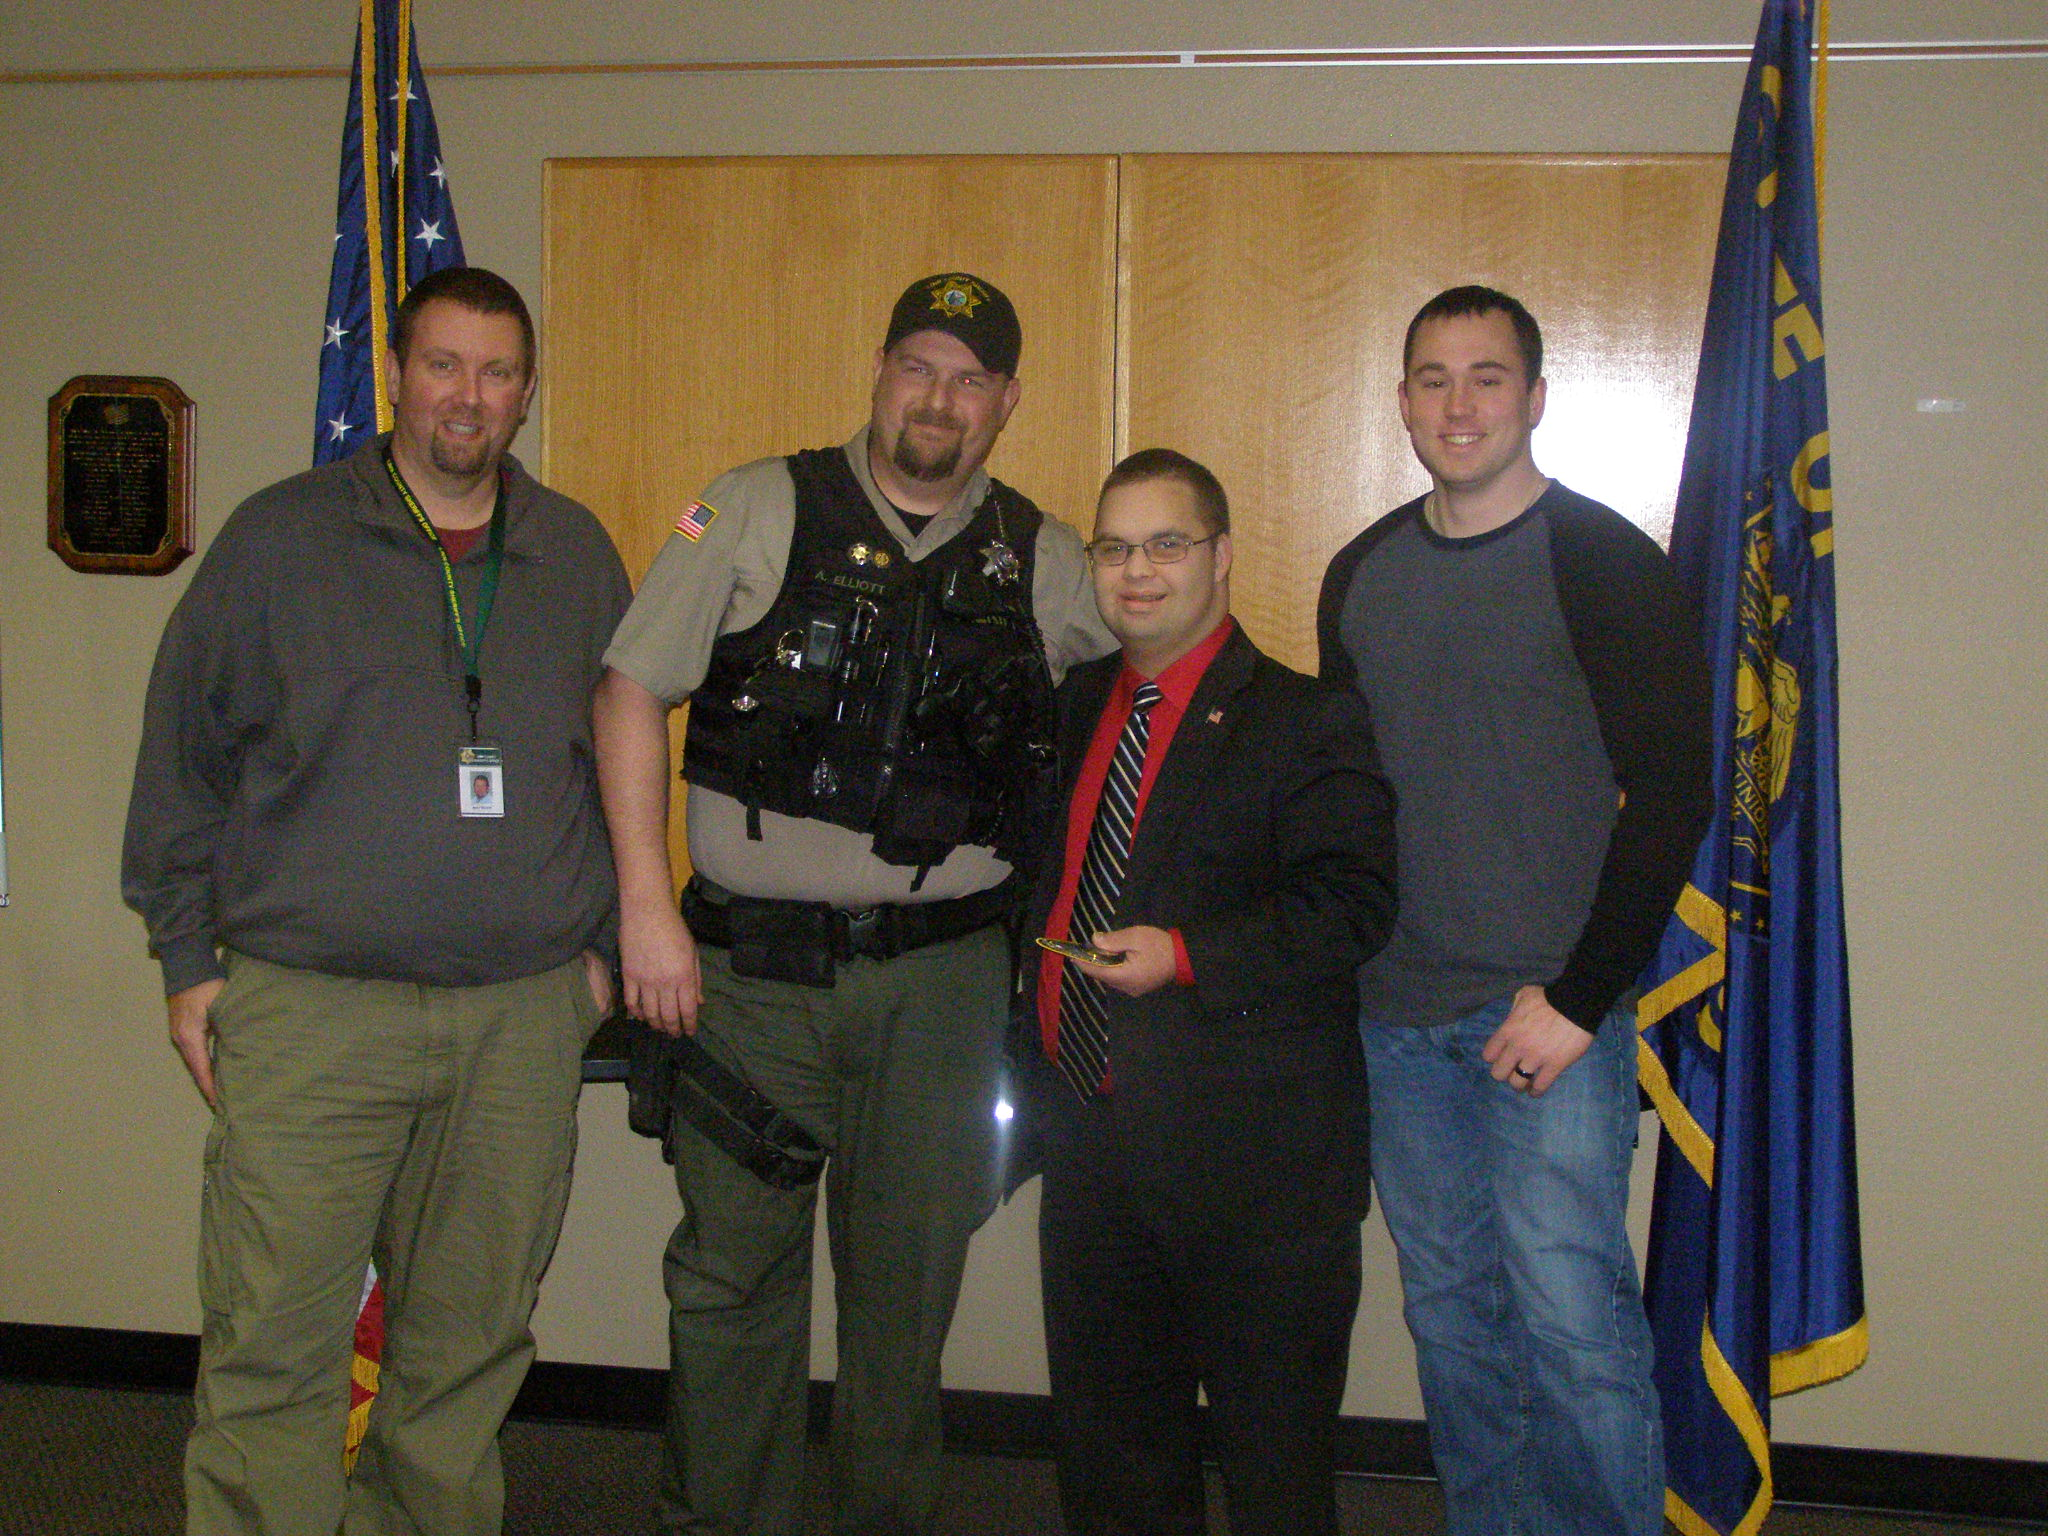 Linn County Sheriff's Office Shows their Appreciation for